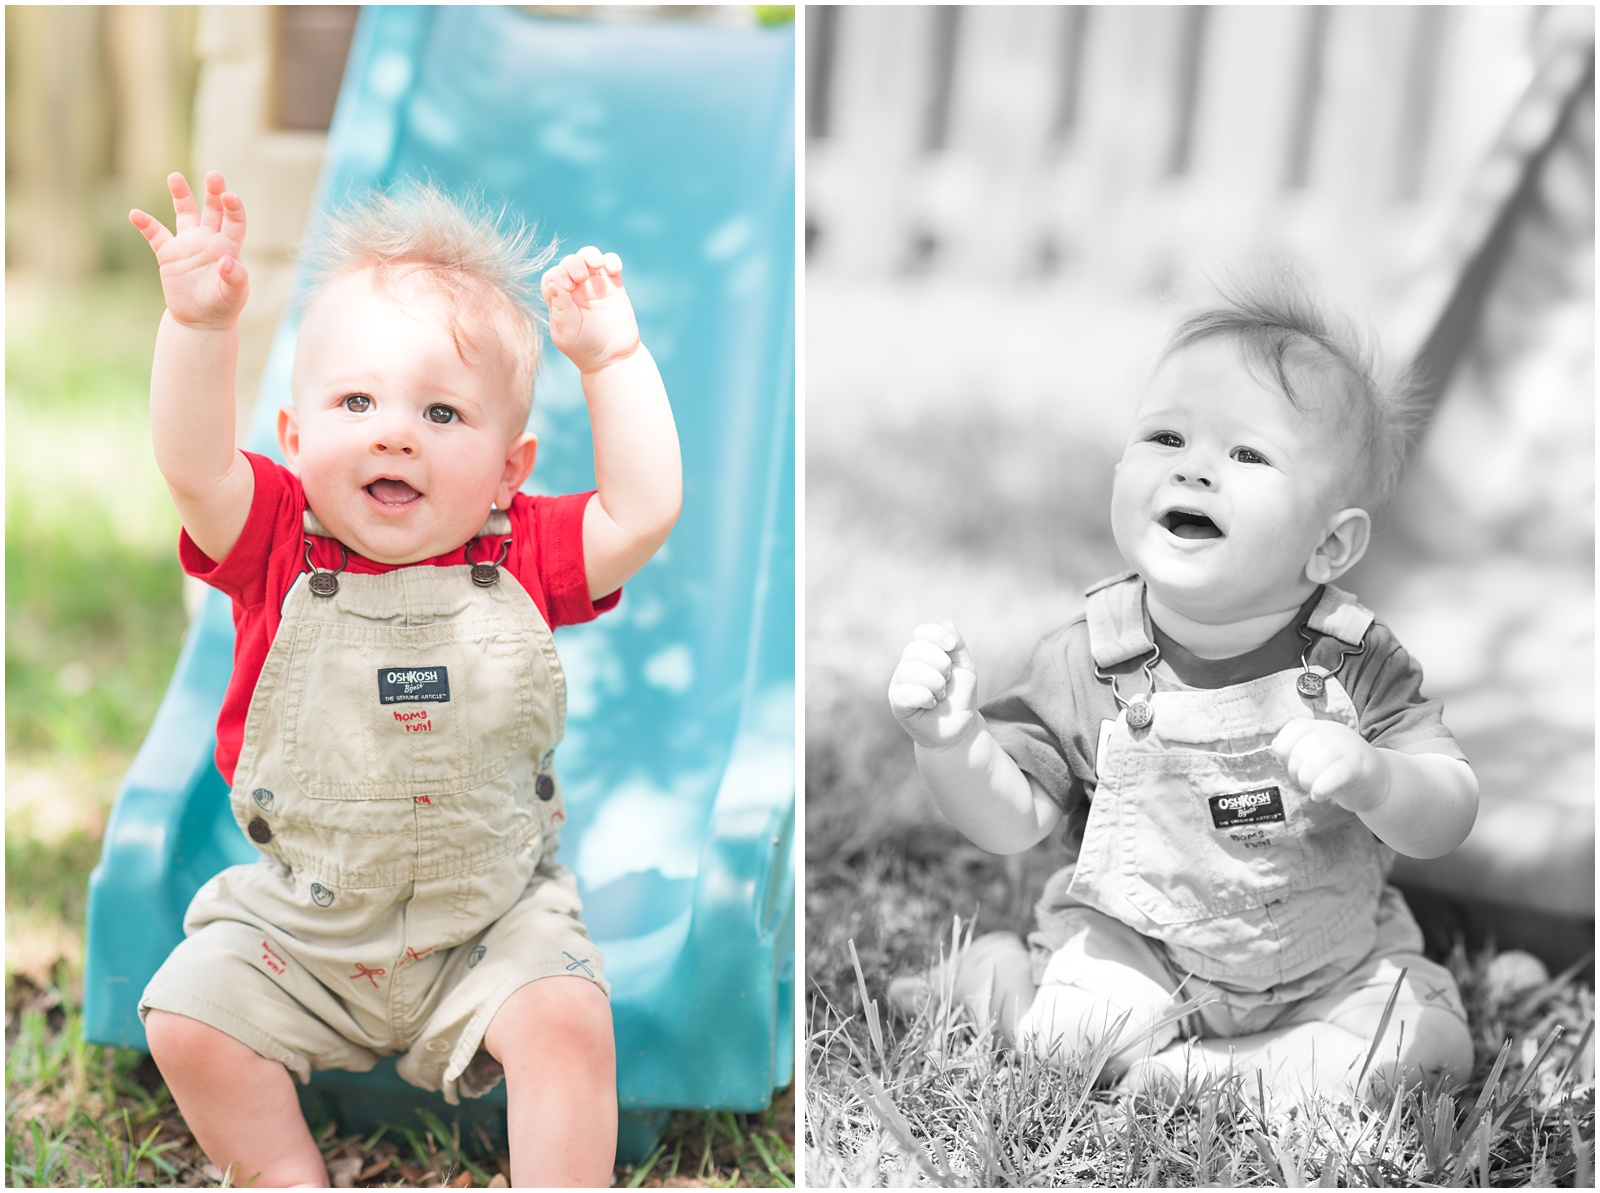 Baby_Portraits_9 Months_Family_Siblings_Growing Up_6.jpg